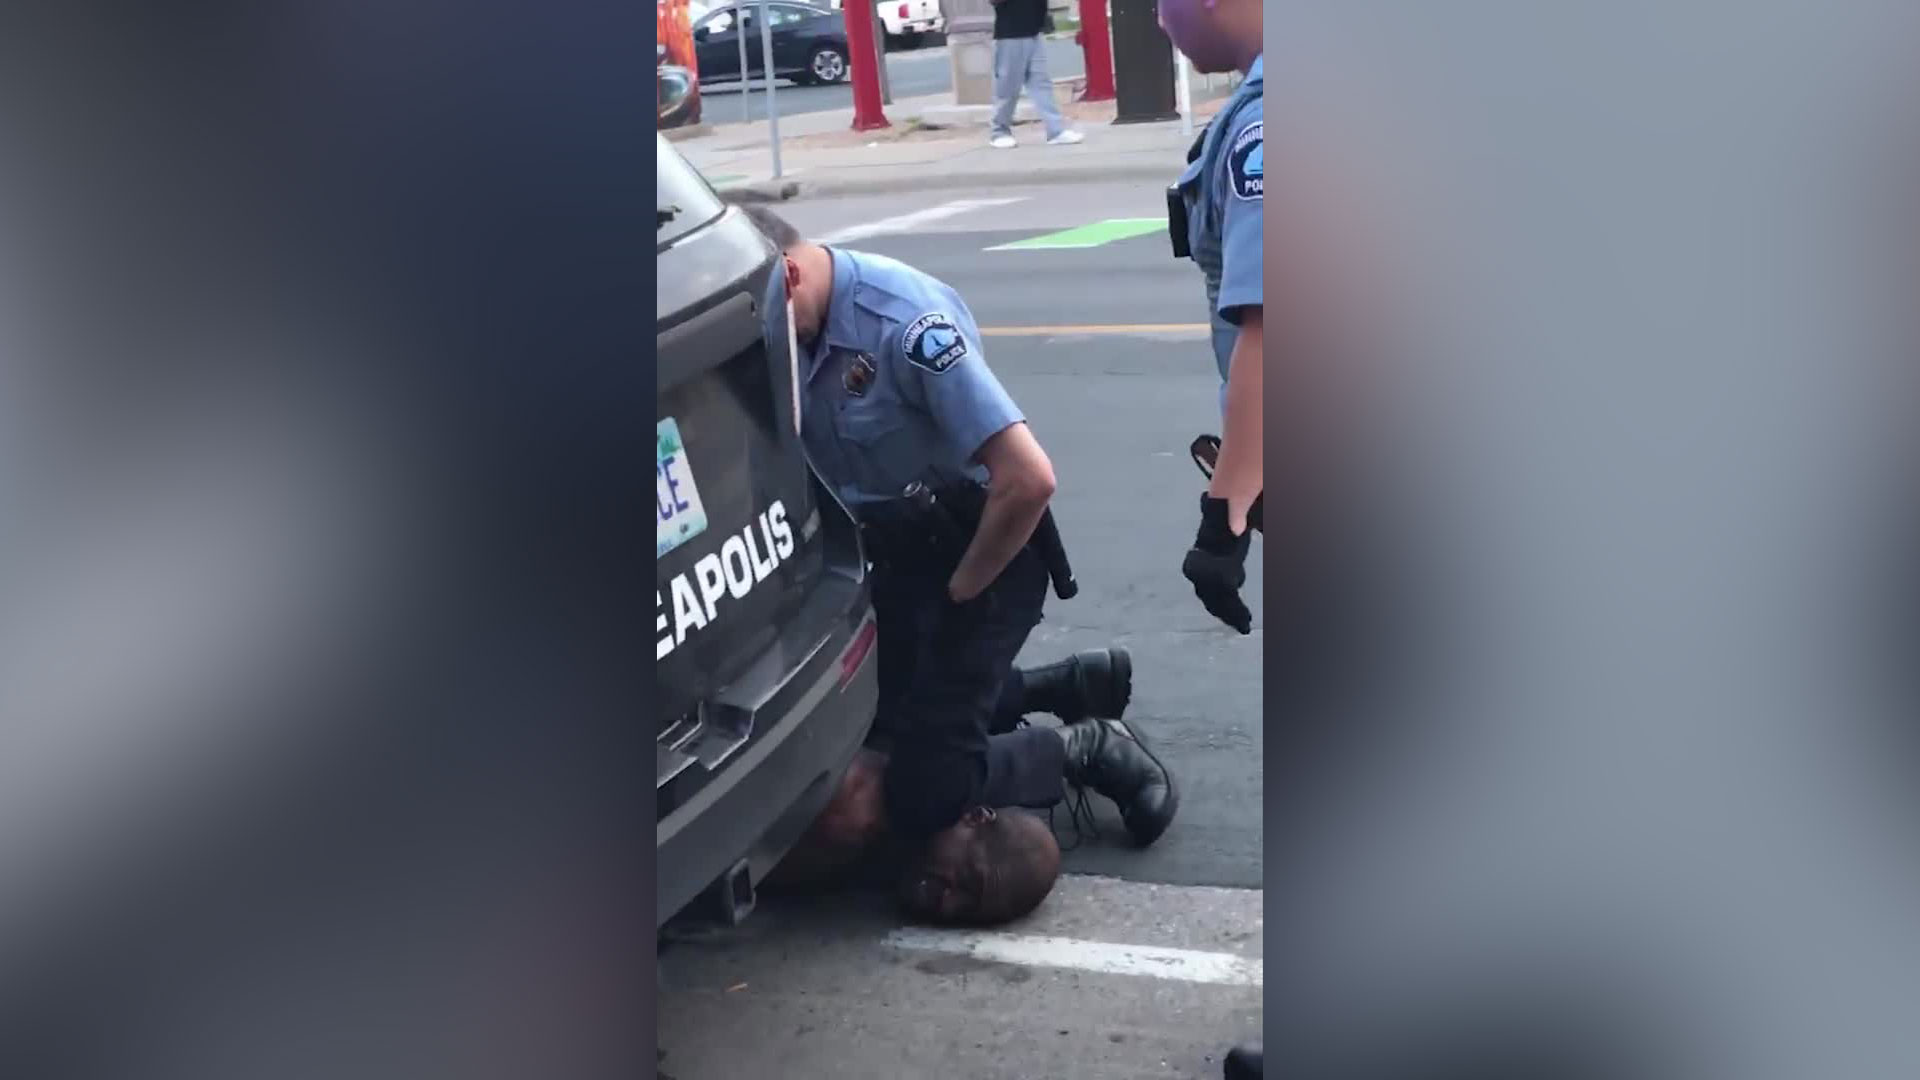 A video that circulated on social media showed two officers by the man on the ground -- one of them had his knee over the back of the man's neck. (Facebook/Darnella Frazier)